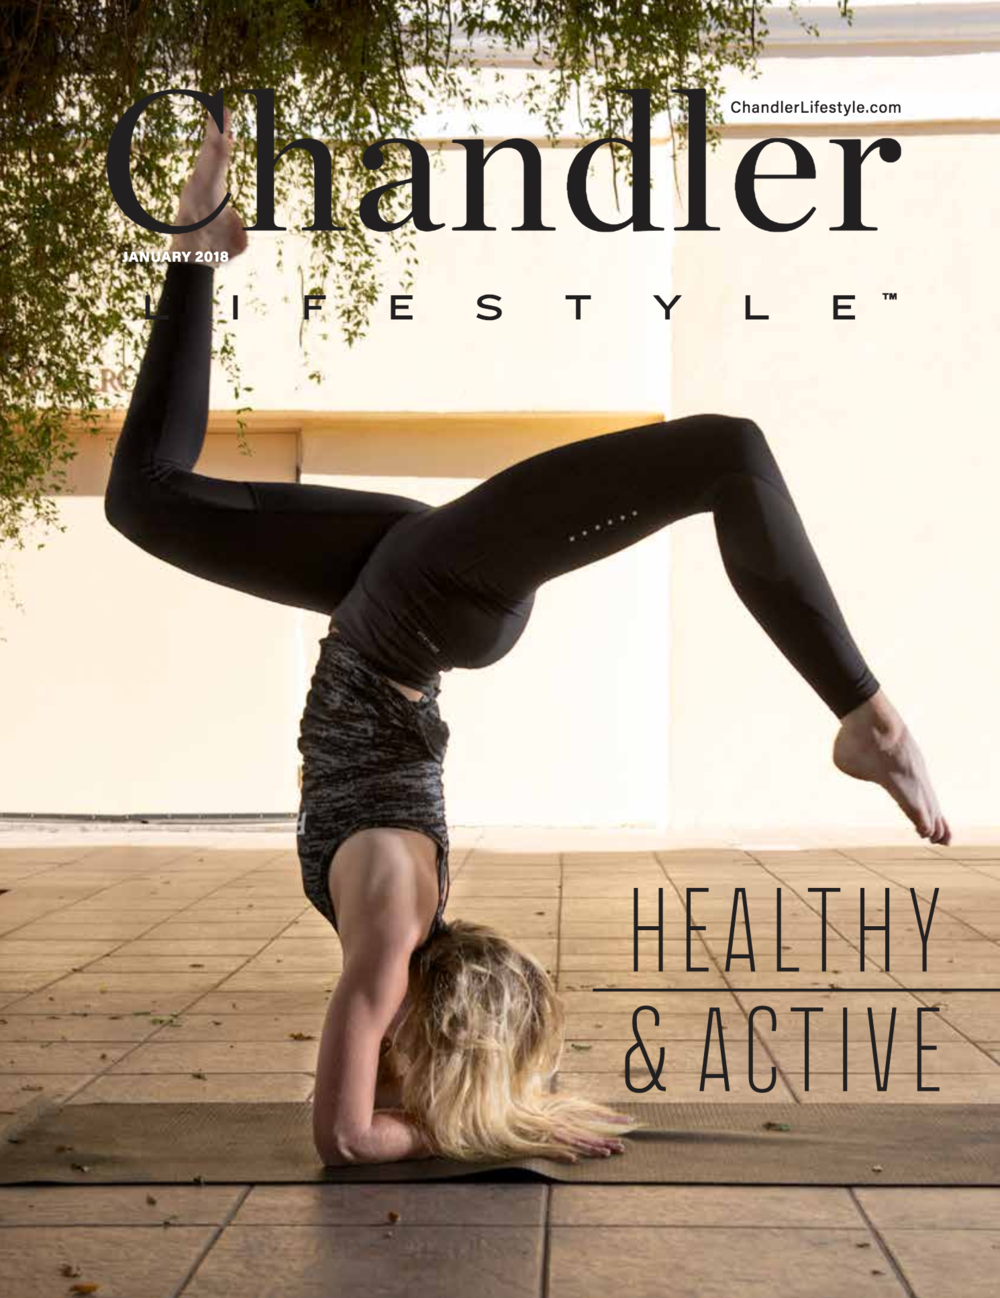 Guess who's on the cover of @chandlerlifestyle !!